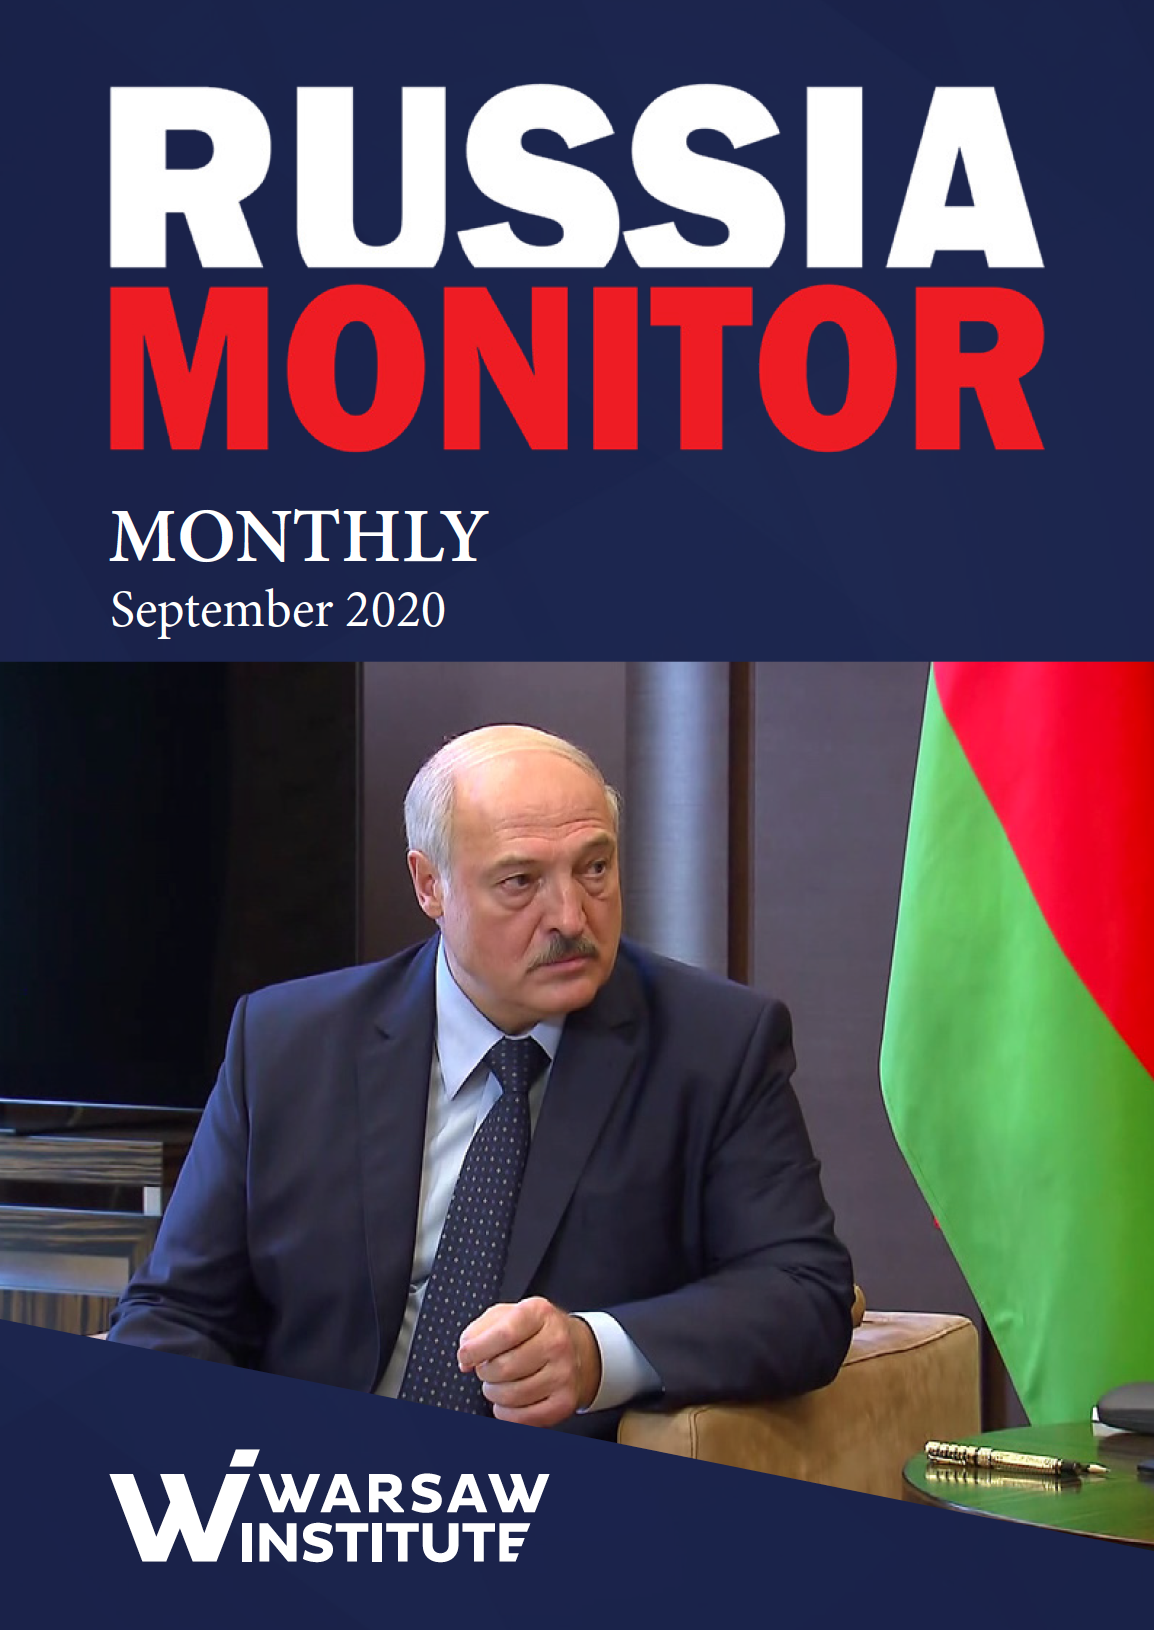 RUSSIA MONITOR MONTHLY 9/2020